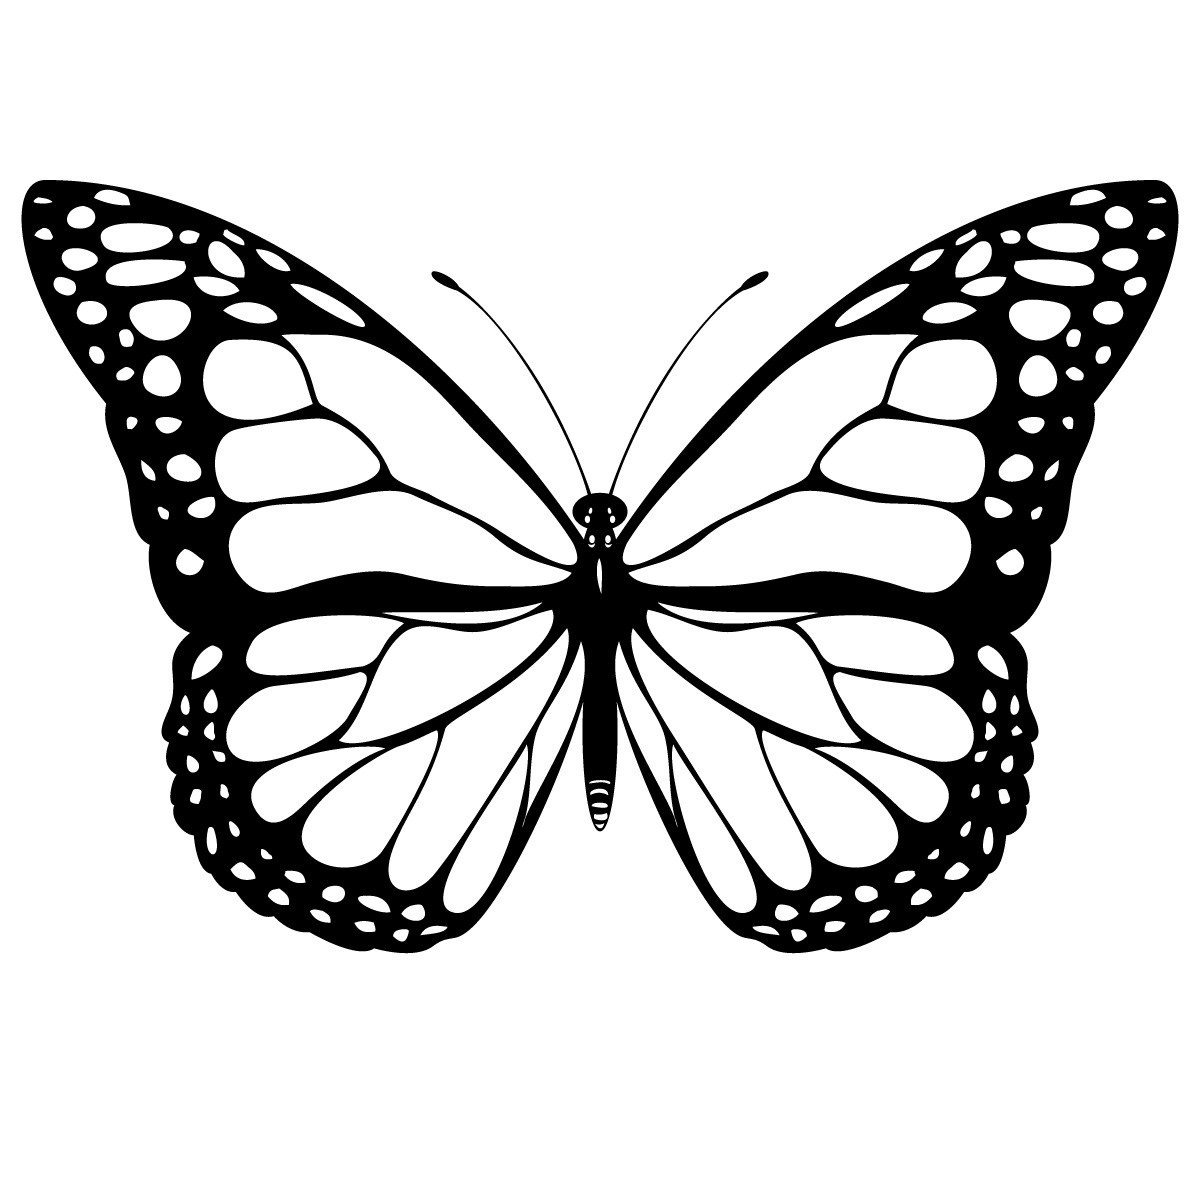 coloring pages detailed butterfly - photo#34